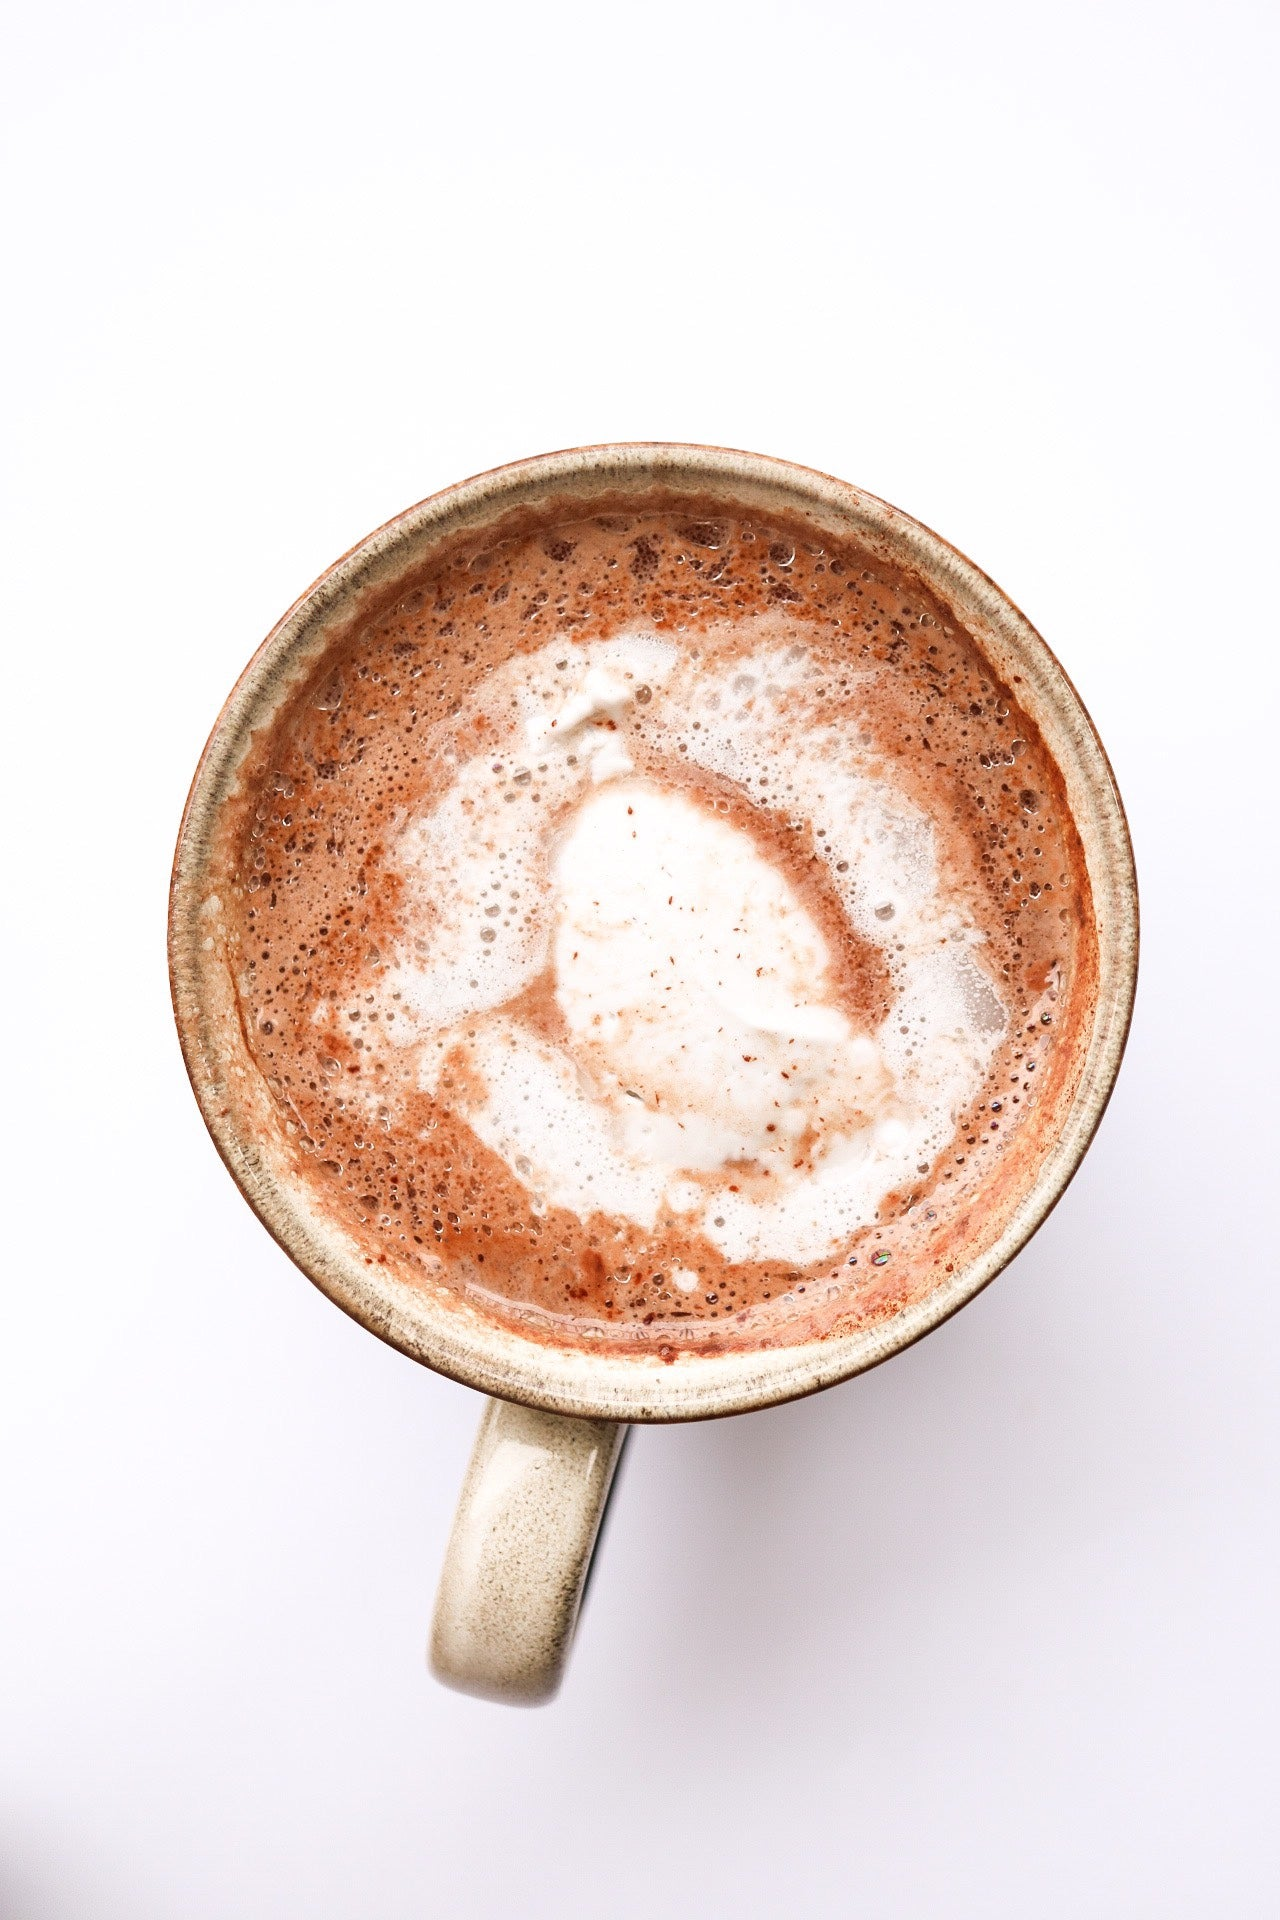 Hot Chocolate Article